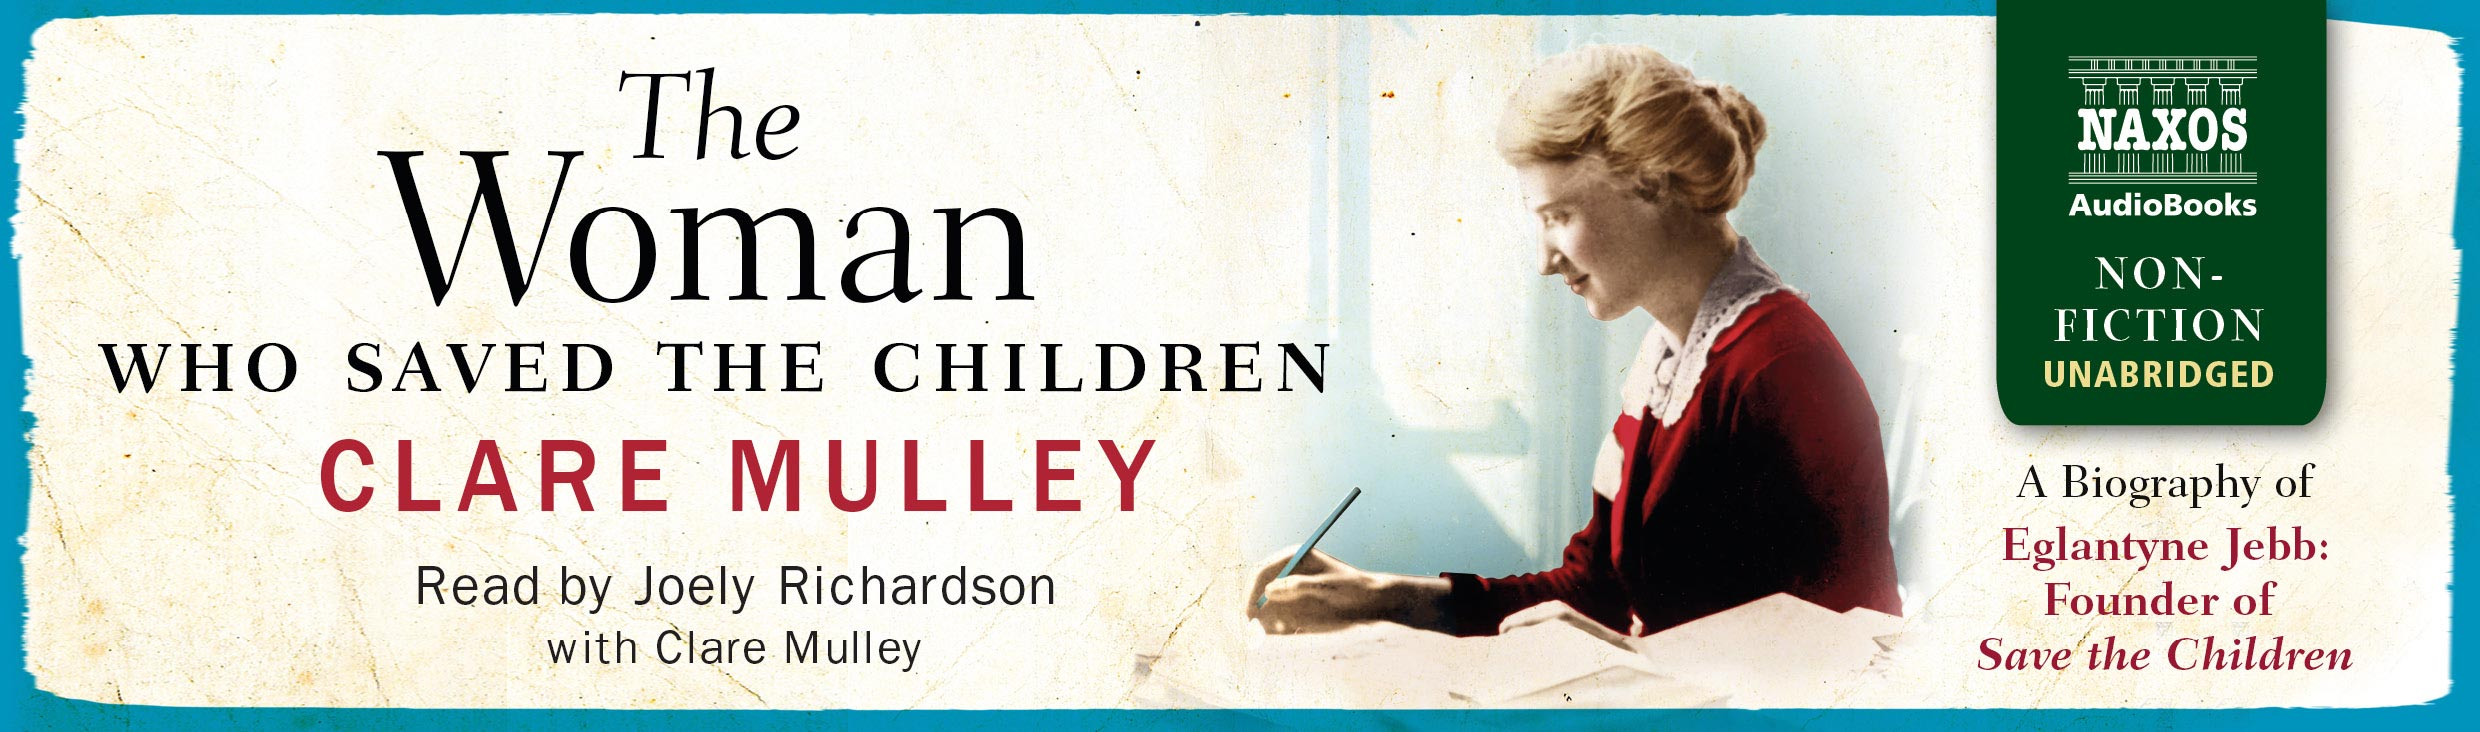 The Woman who Saved the Children (unabridged)